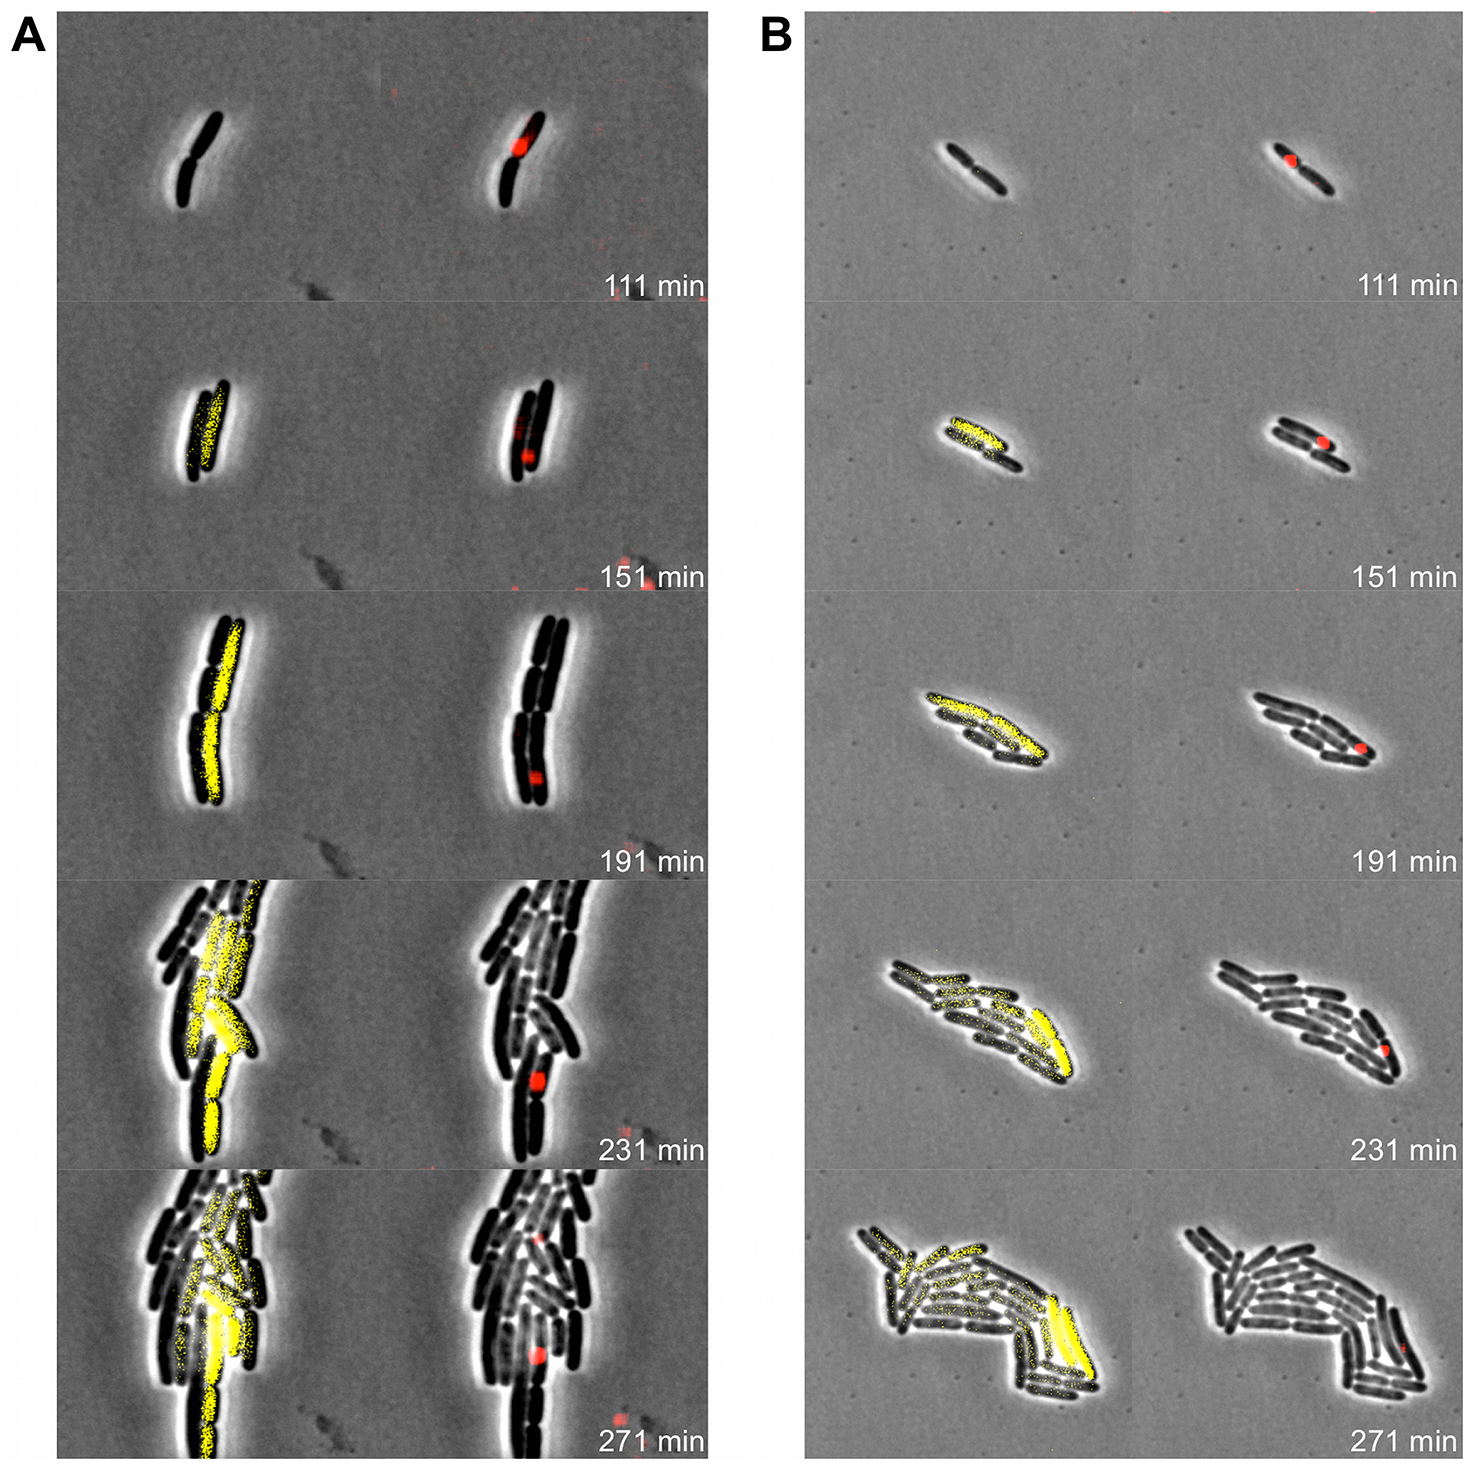 Pid expression is linked to phage carrier cells.